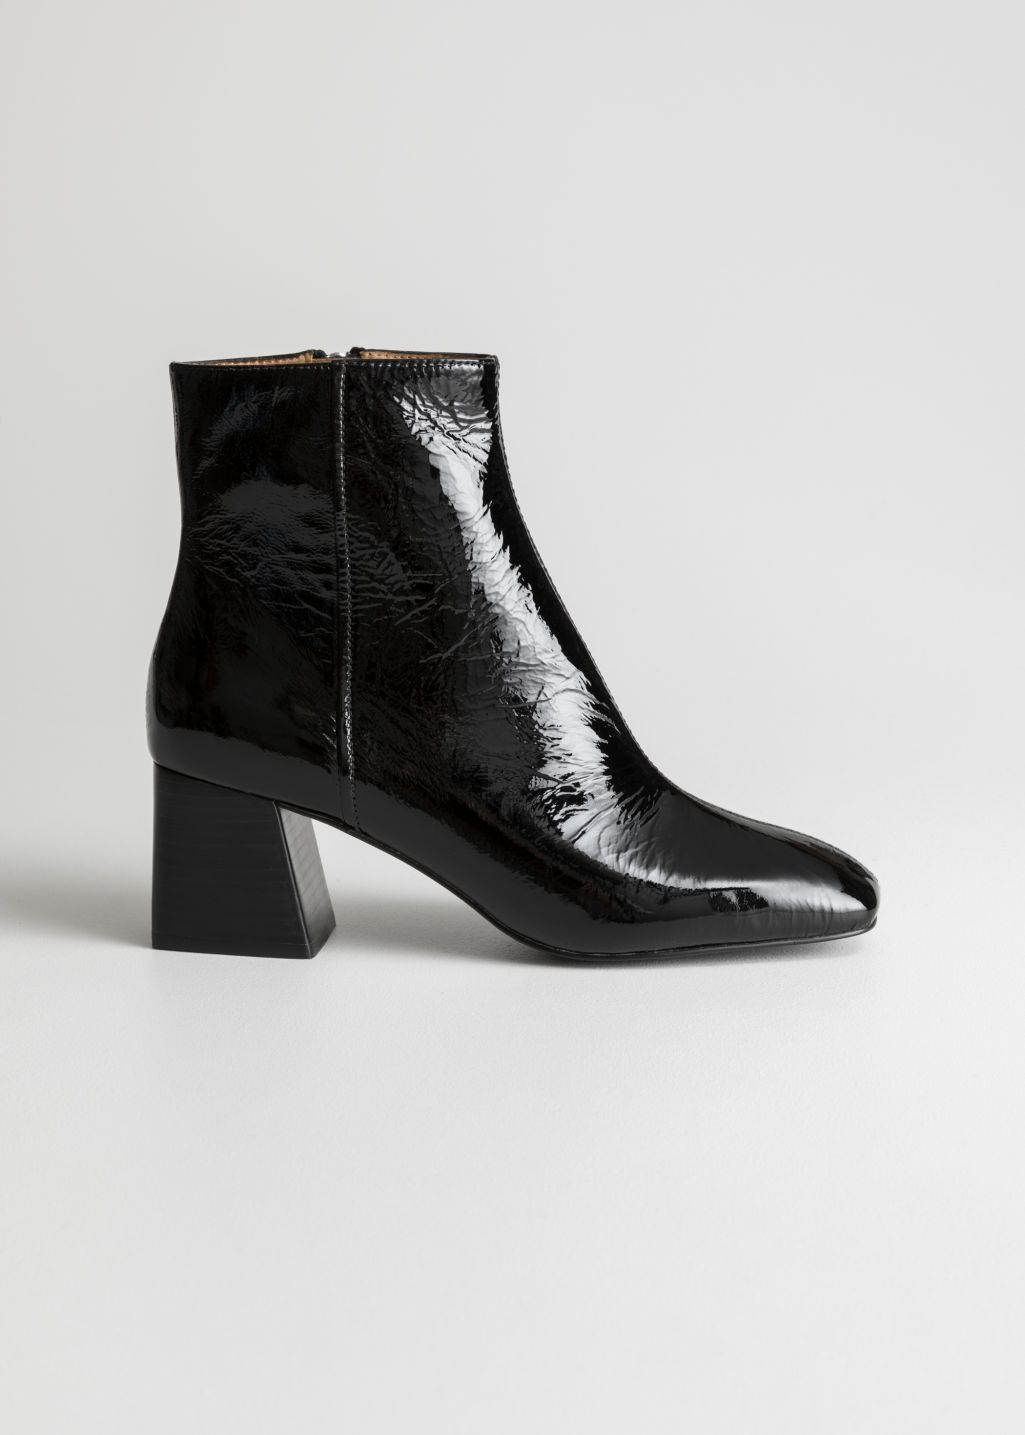 Patent Square Toe Ankle Boots | Boots